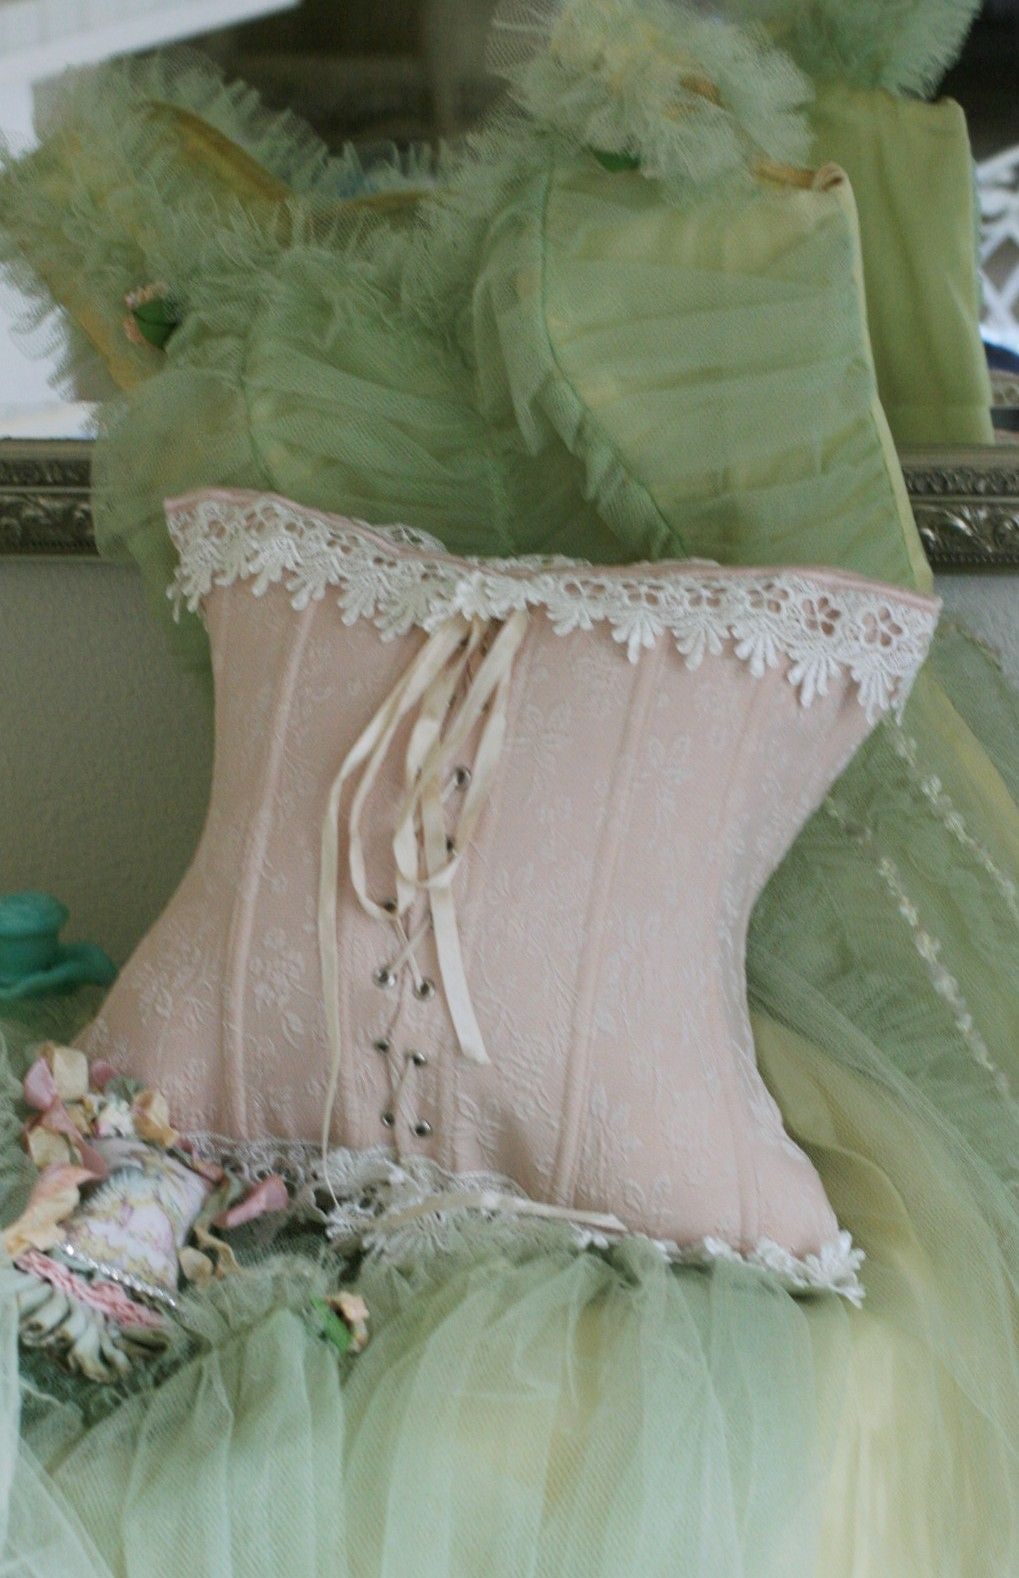 Corset pillow shabby chic rustic french country bedroom decor idea